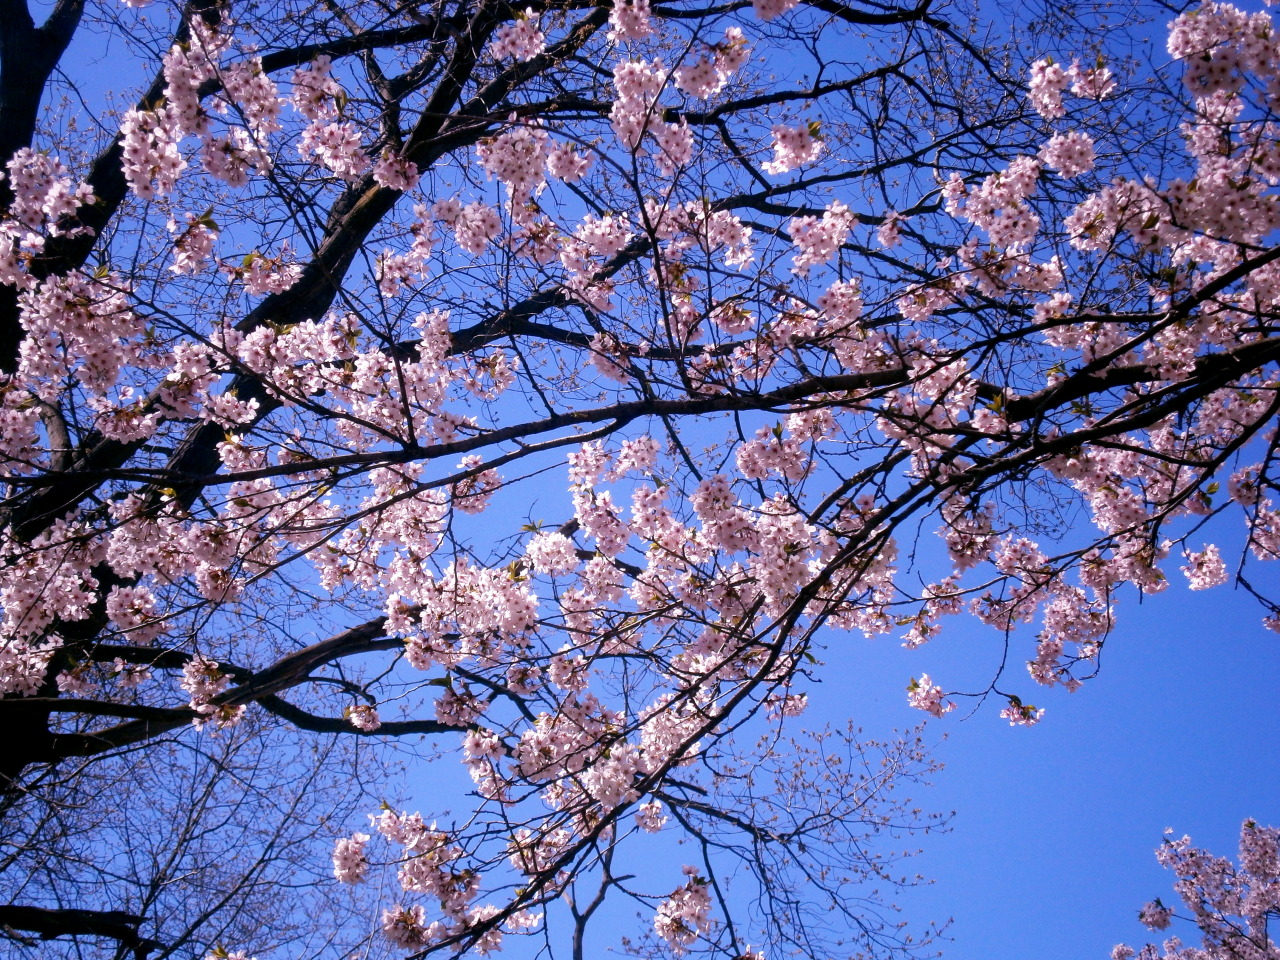 aquilaofarkham:  The cherry blossoms were in full bloom near my home this weekend and I couldn't help but take a couple shots :)